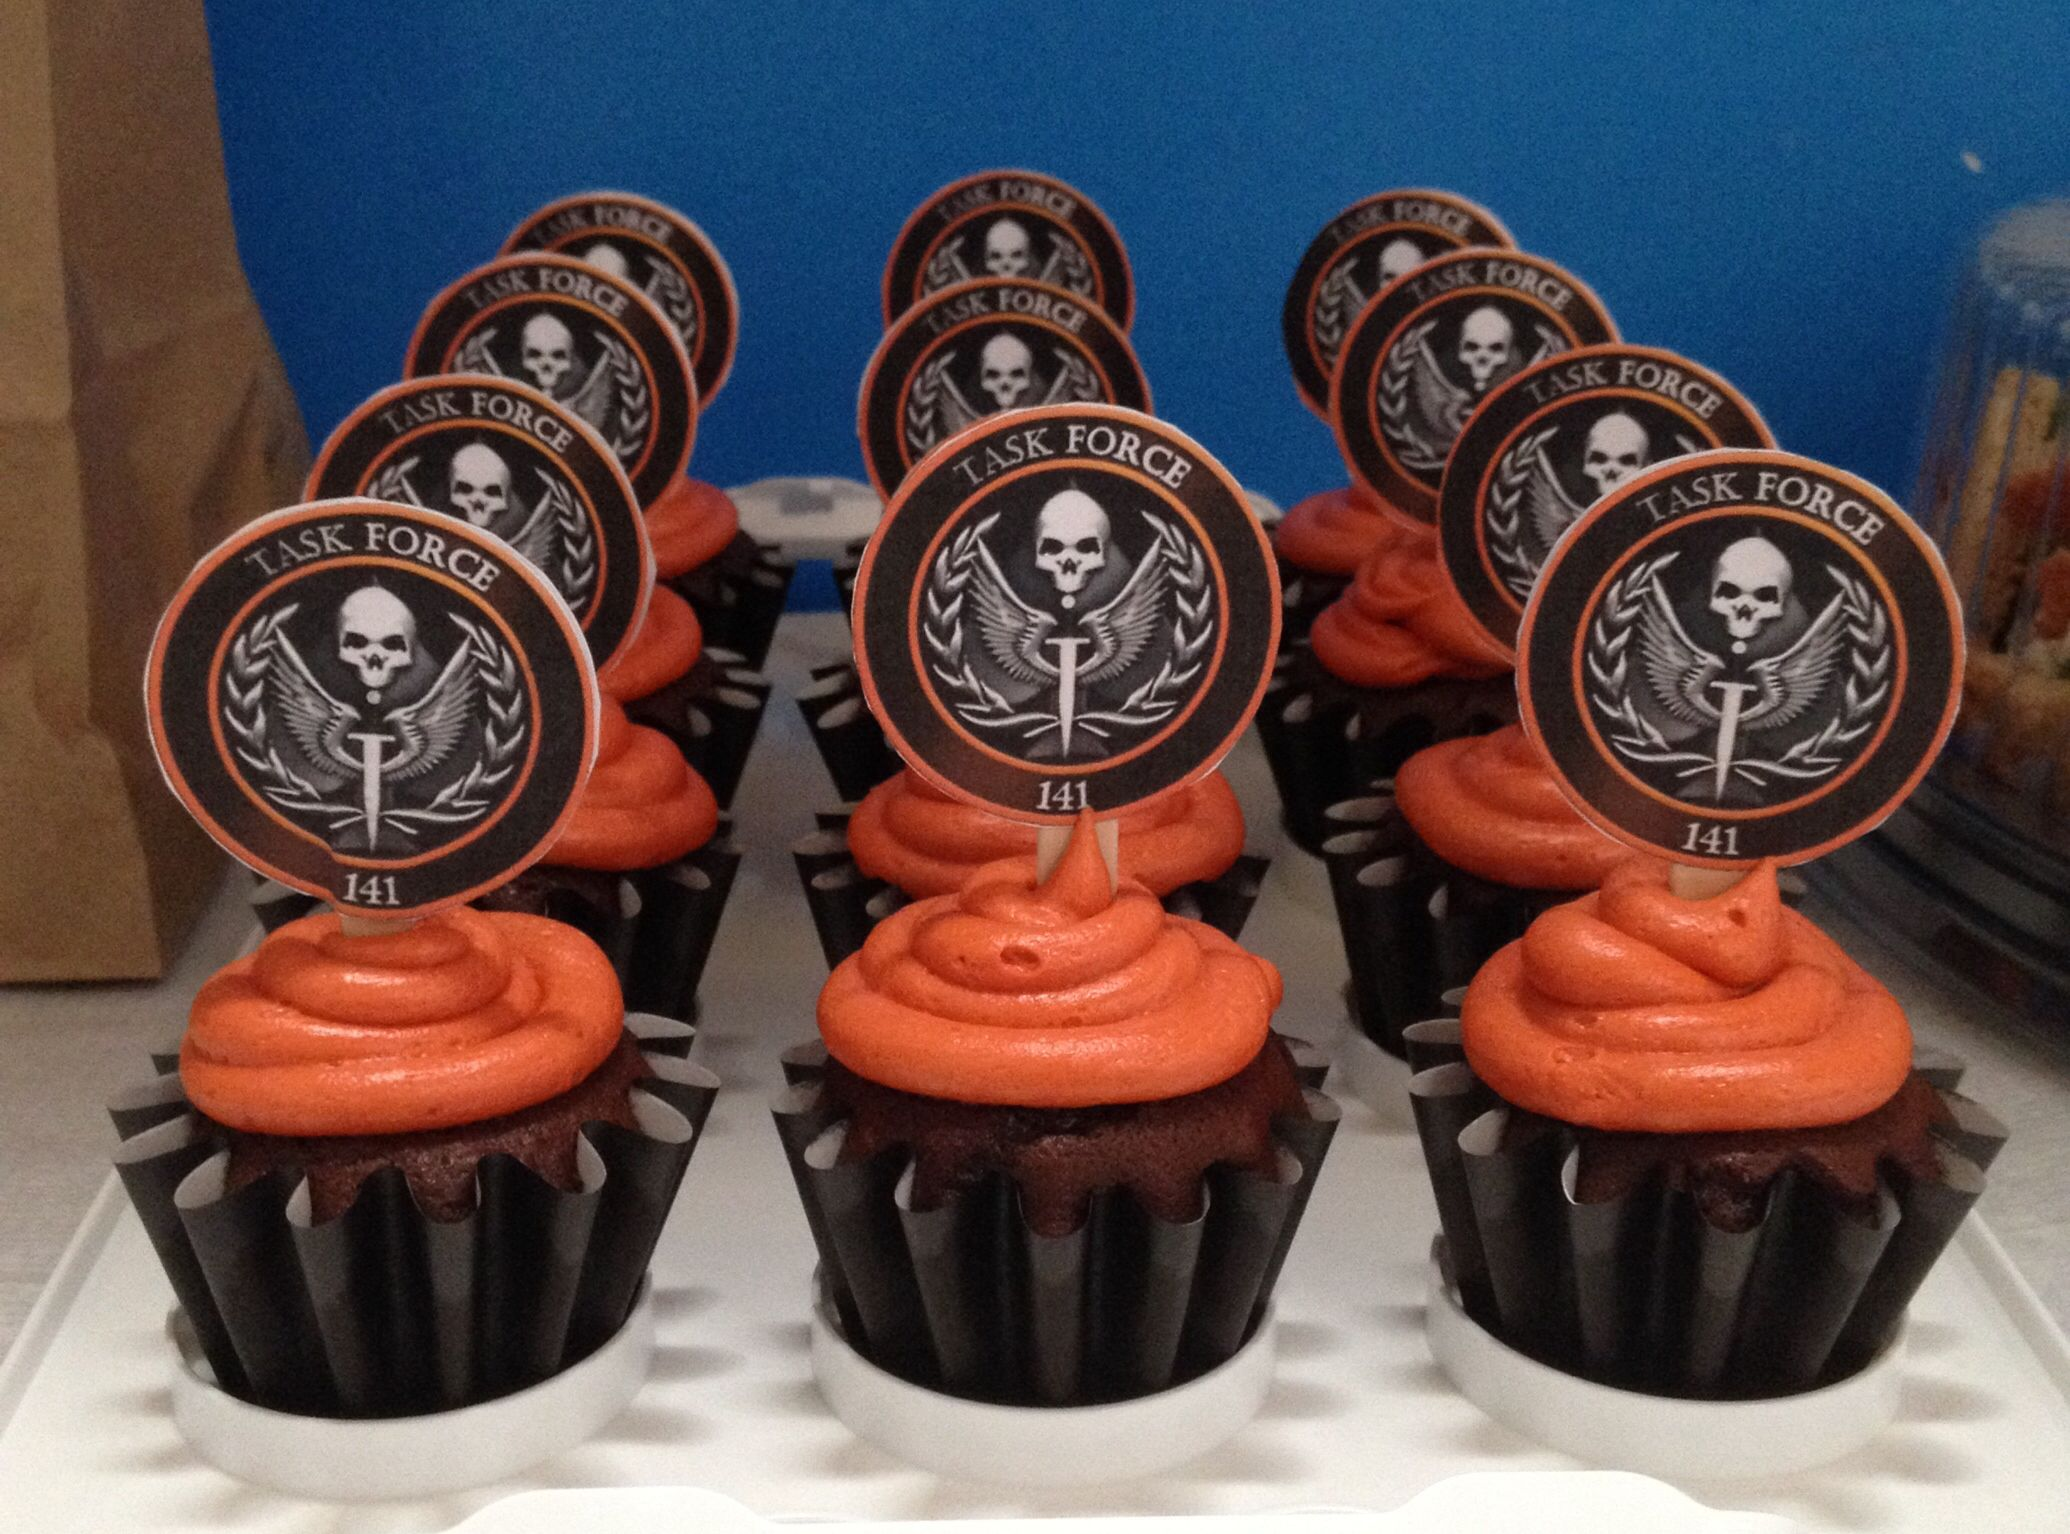 Call of duty food baking desserts